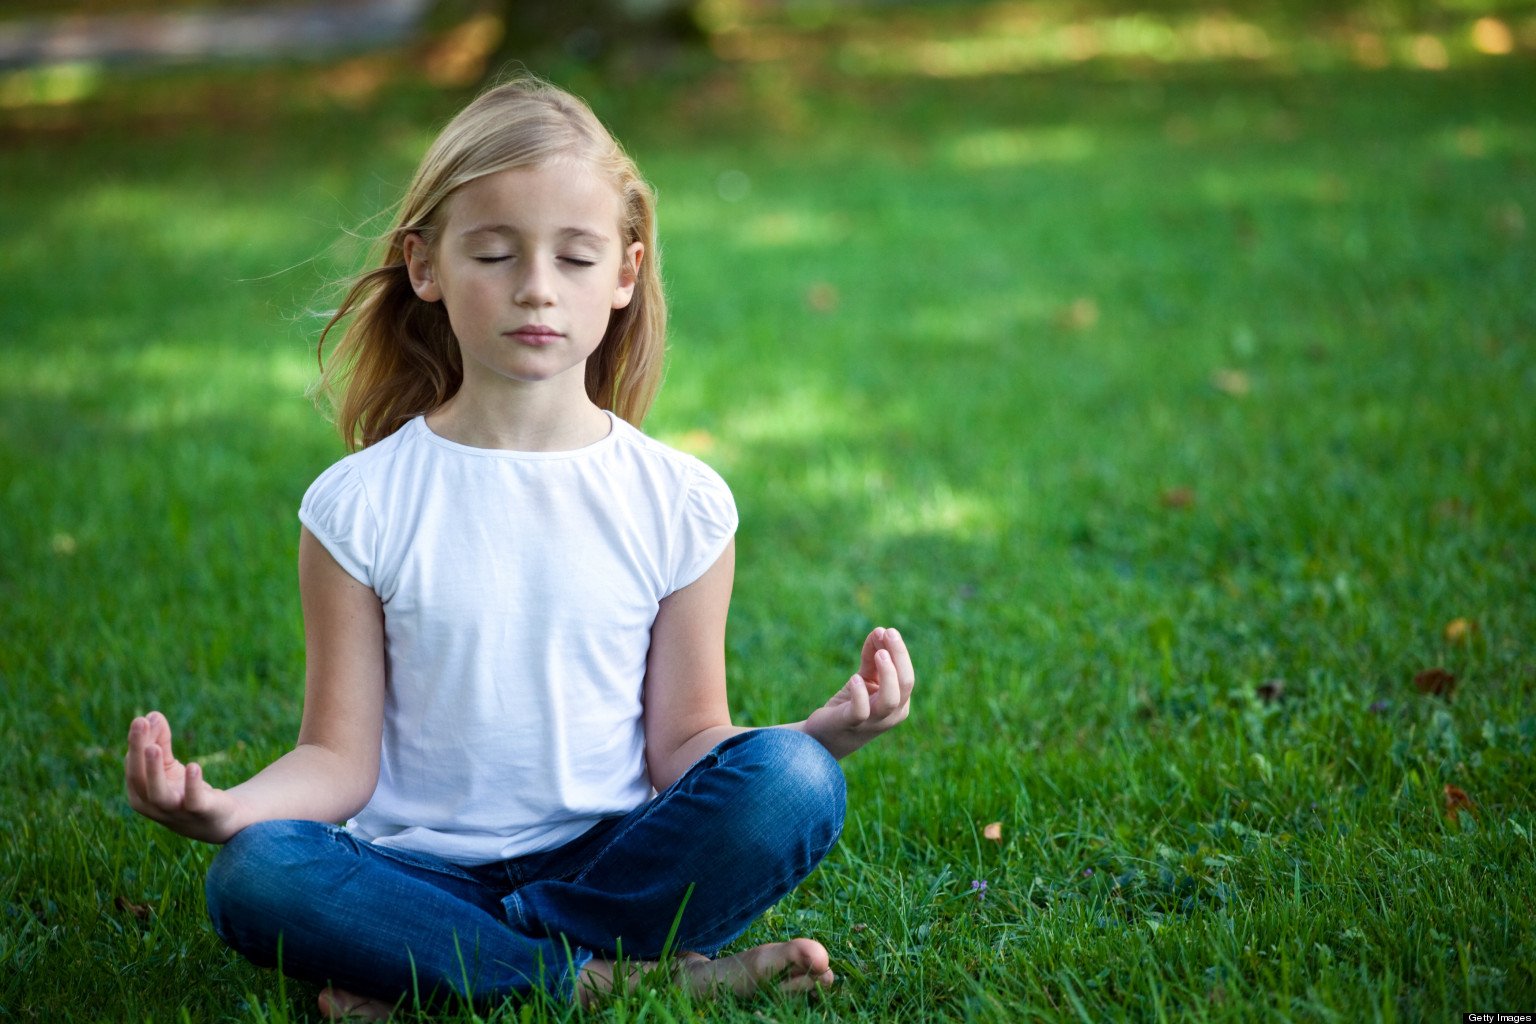 Child sitting cross-legged and meditating on a grassy lawn